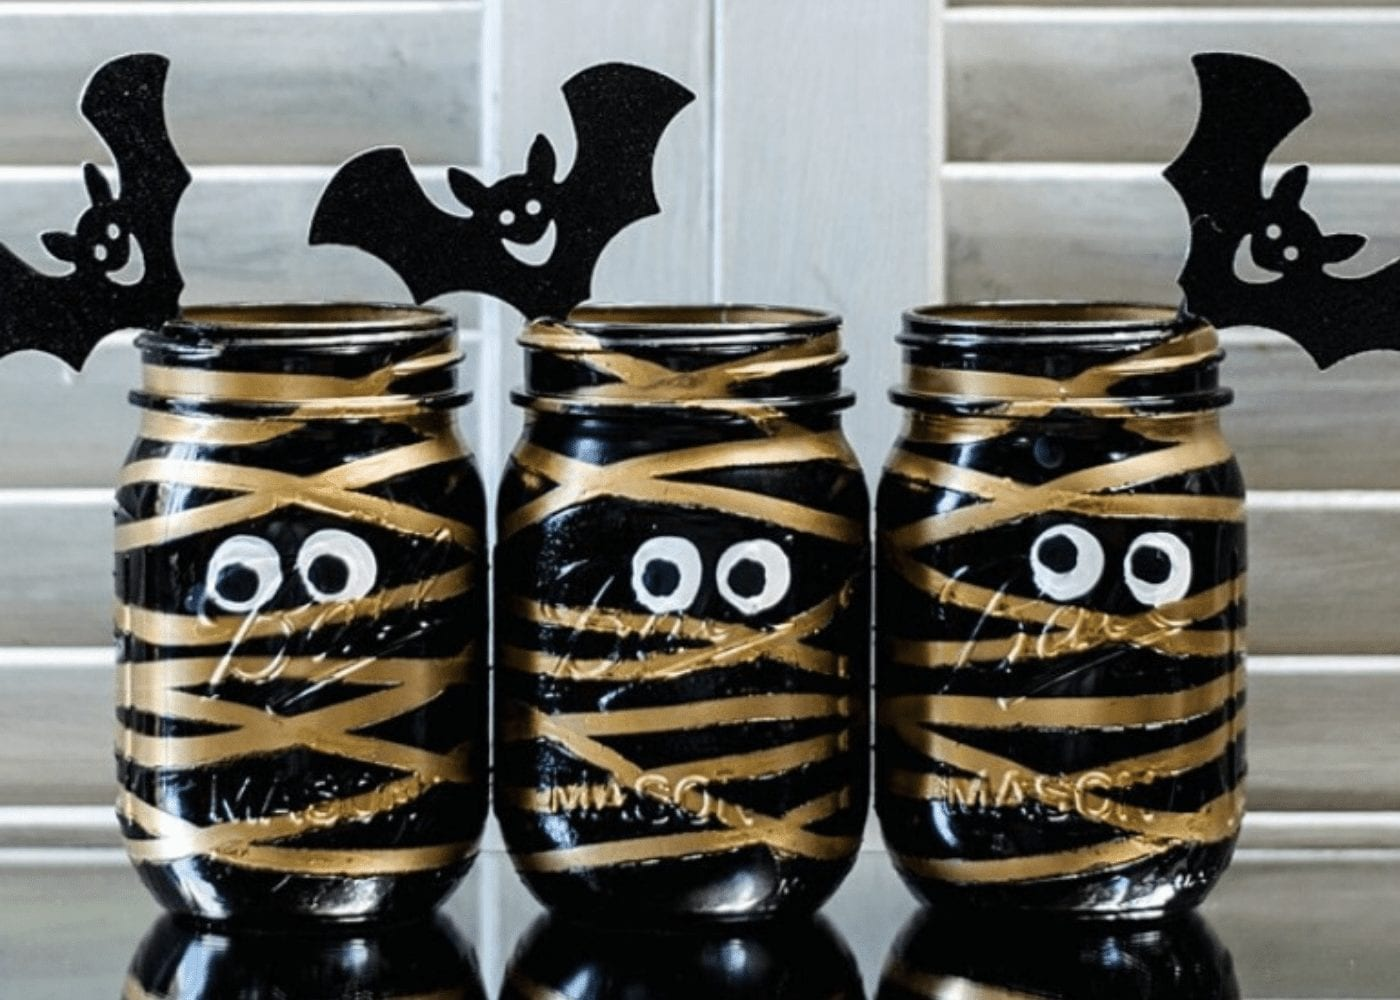 Halloween in Singapore: Five spooky crafts for kids